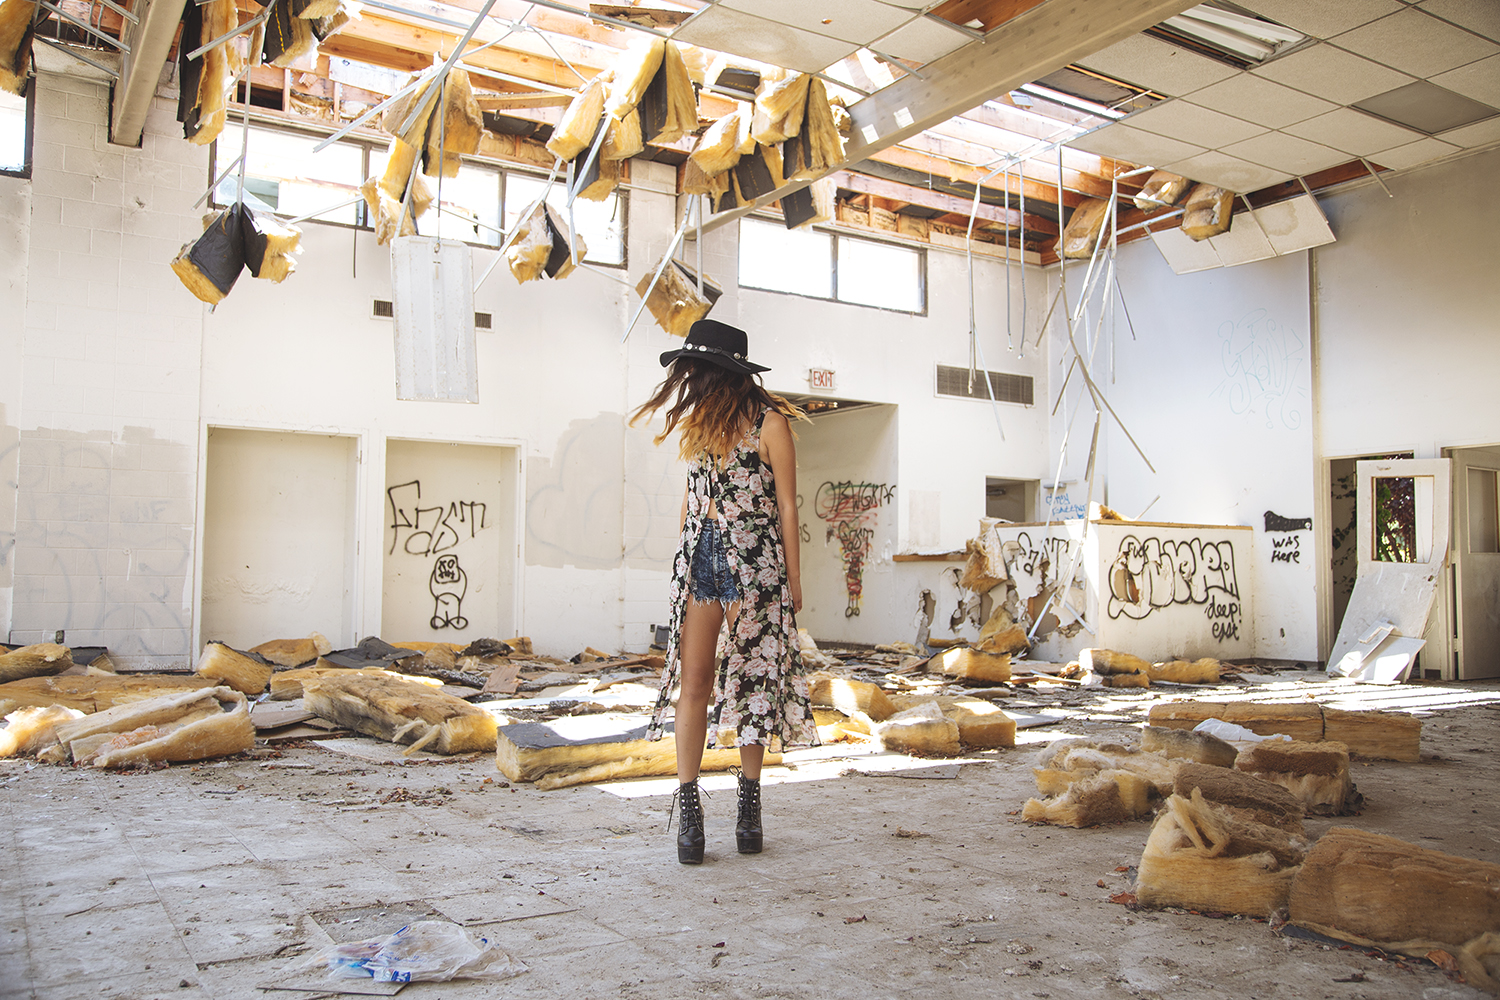 floral maxi dress, kimono vest, platforms, jeffrey campbell tardy, concho hat, abandoned building photoshoot, abandoned building, vant jag, vant jag psychedelic triangle bib